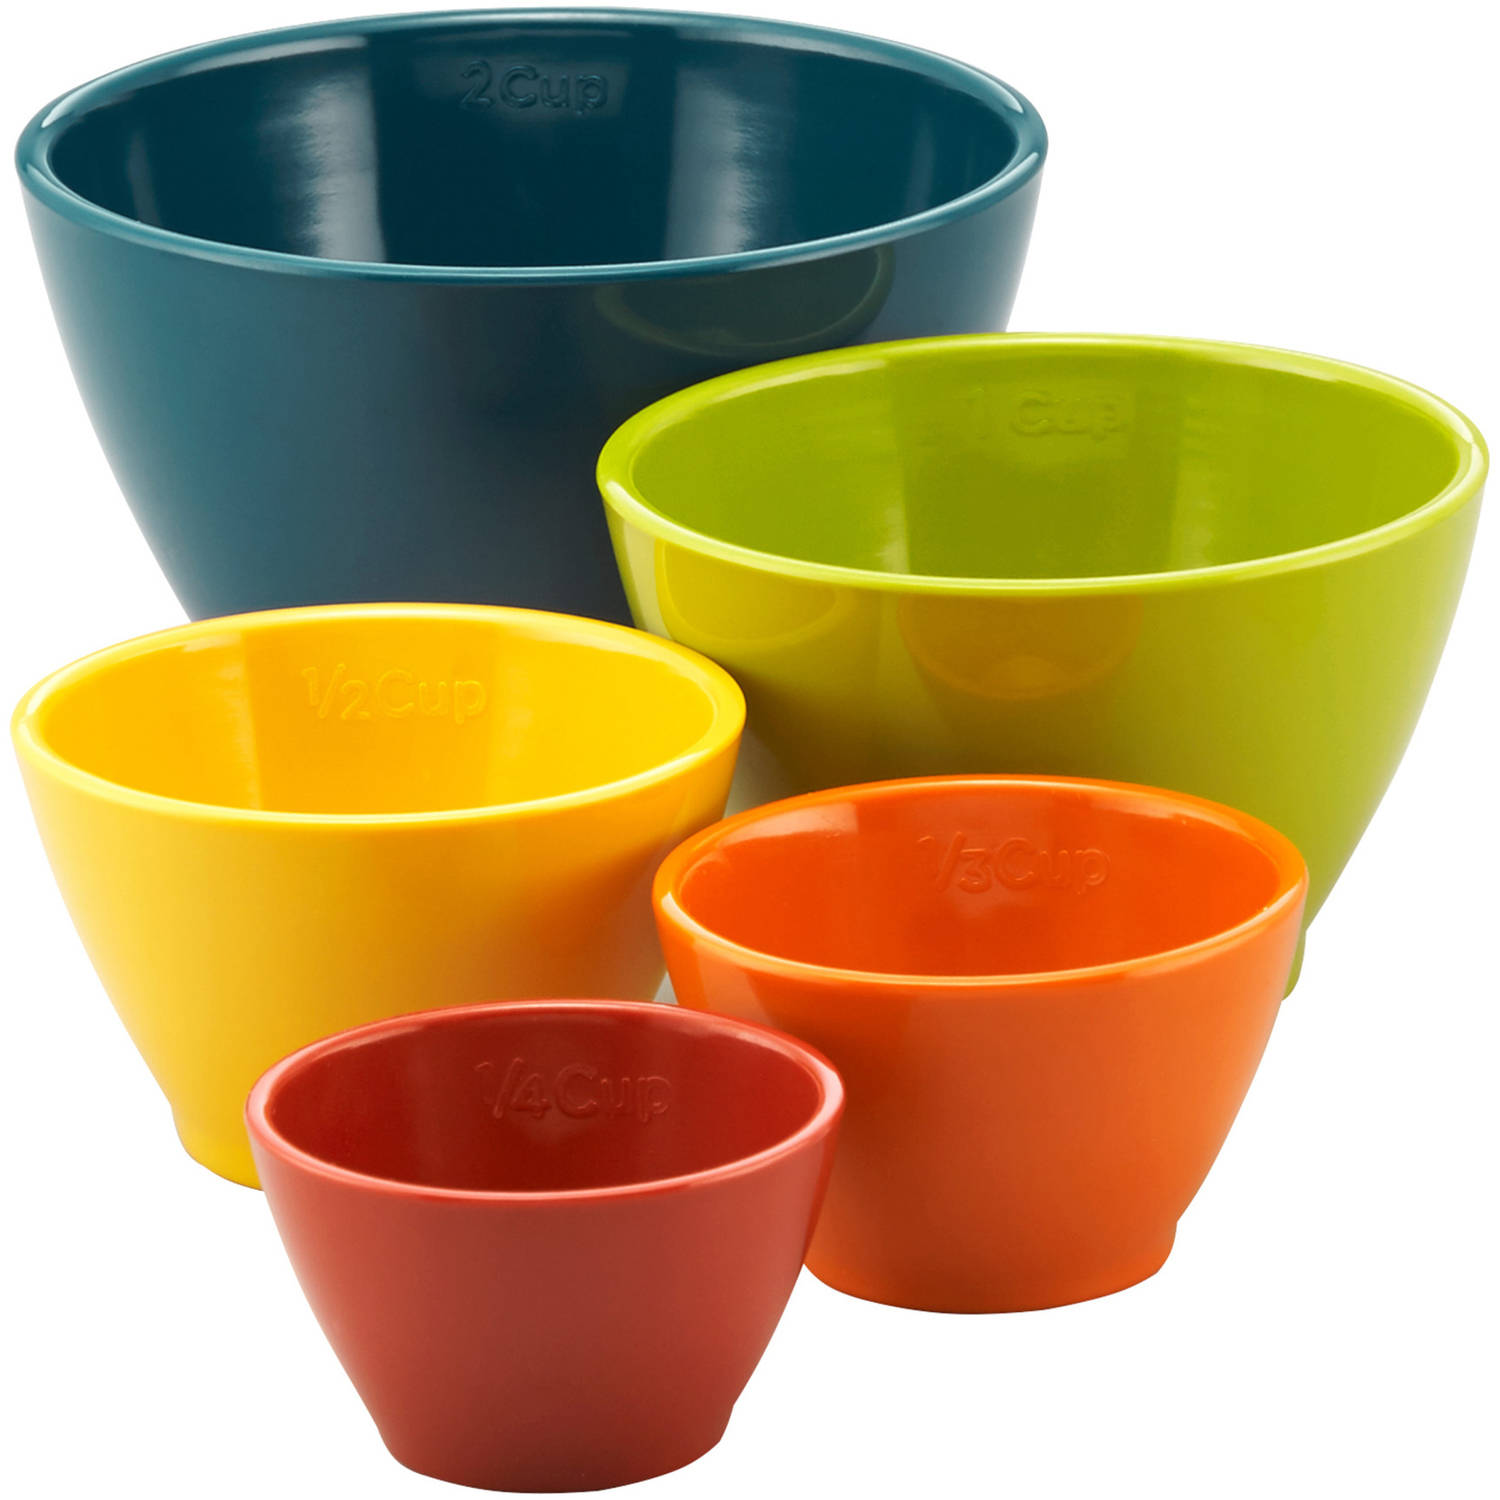 Rachael Ray Melamine Nesting Measuring Cups, 5-Piece Set, Assorted